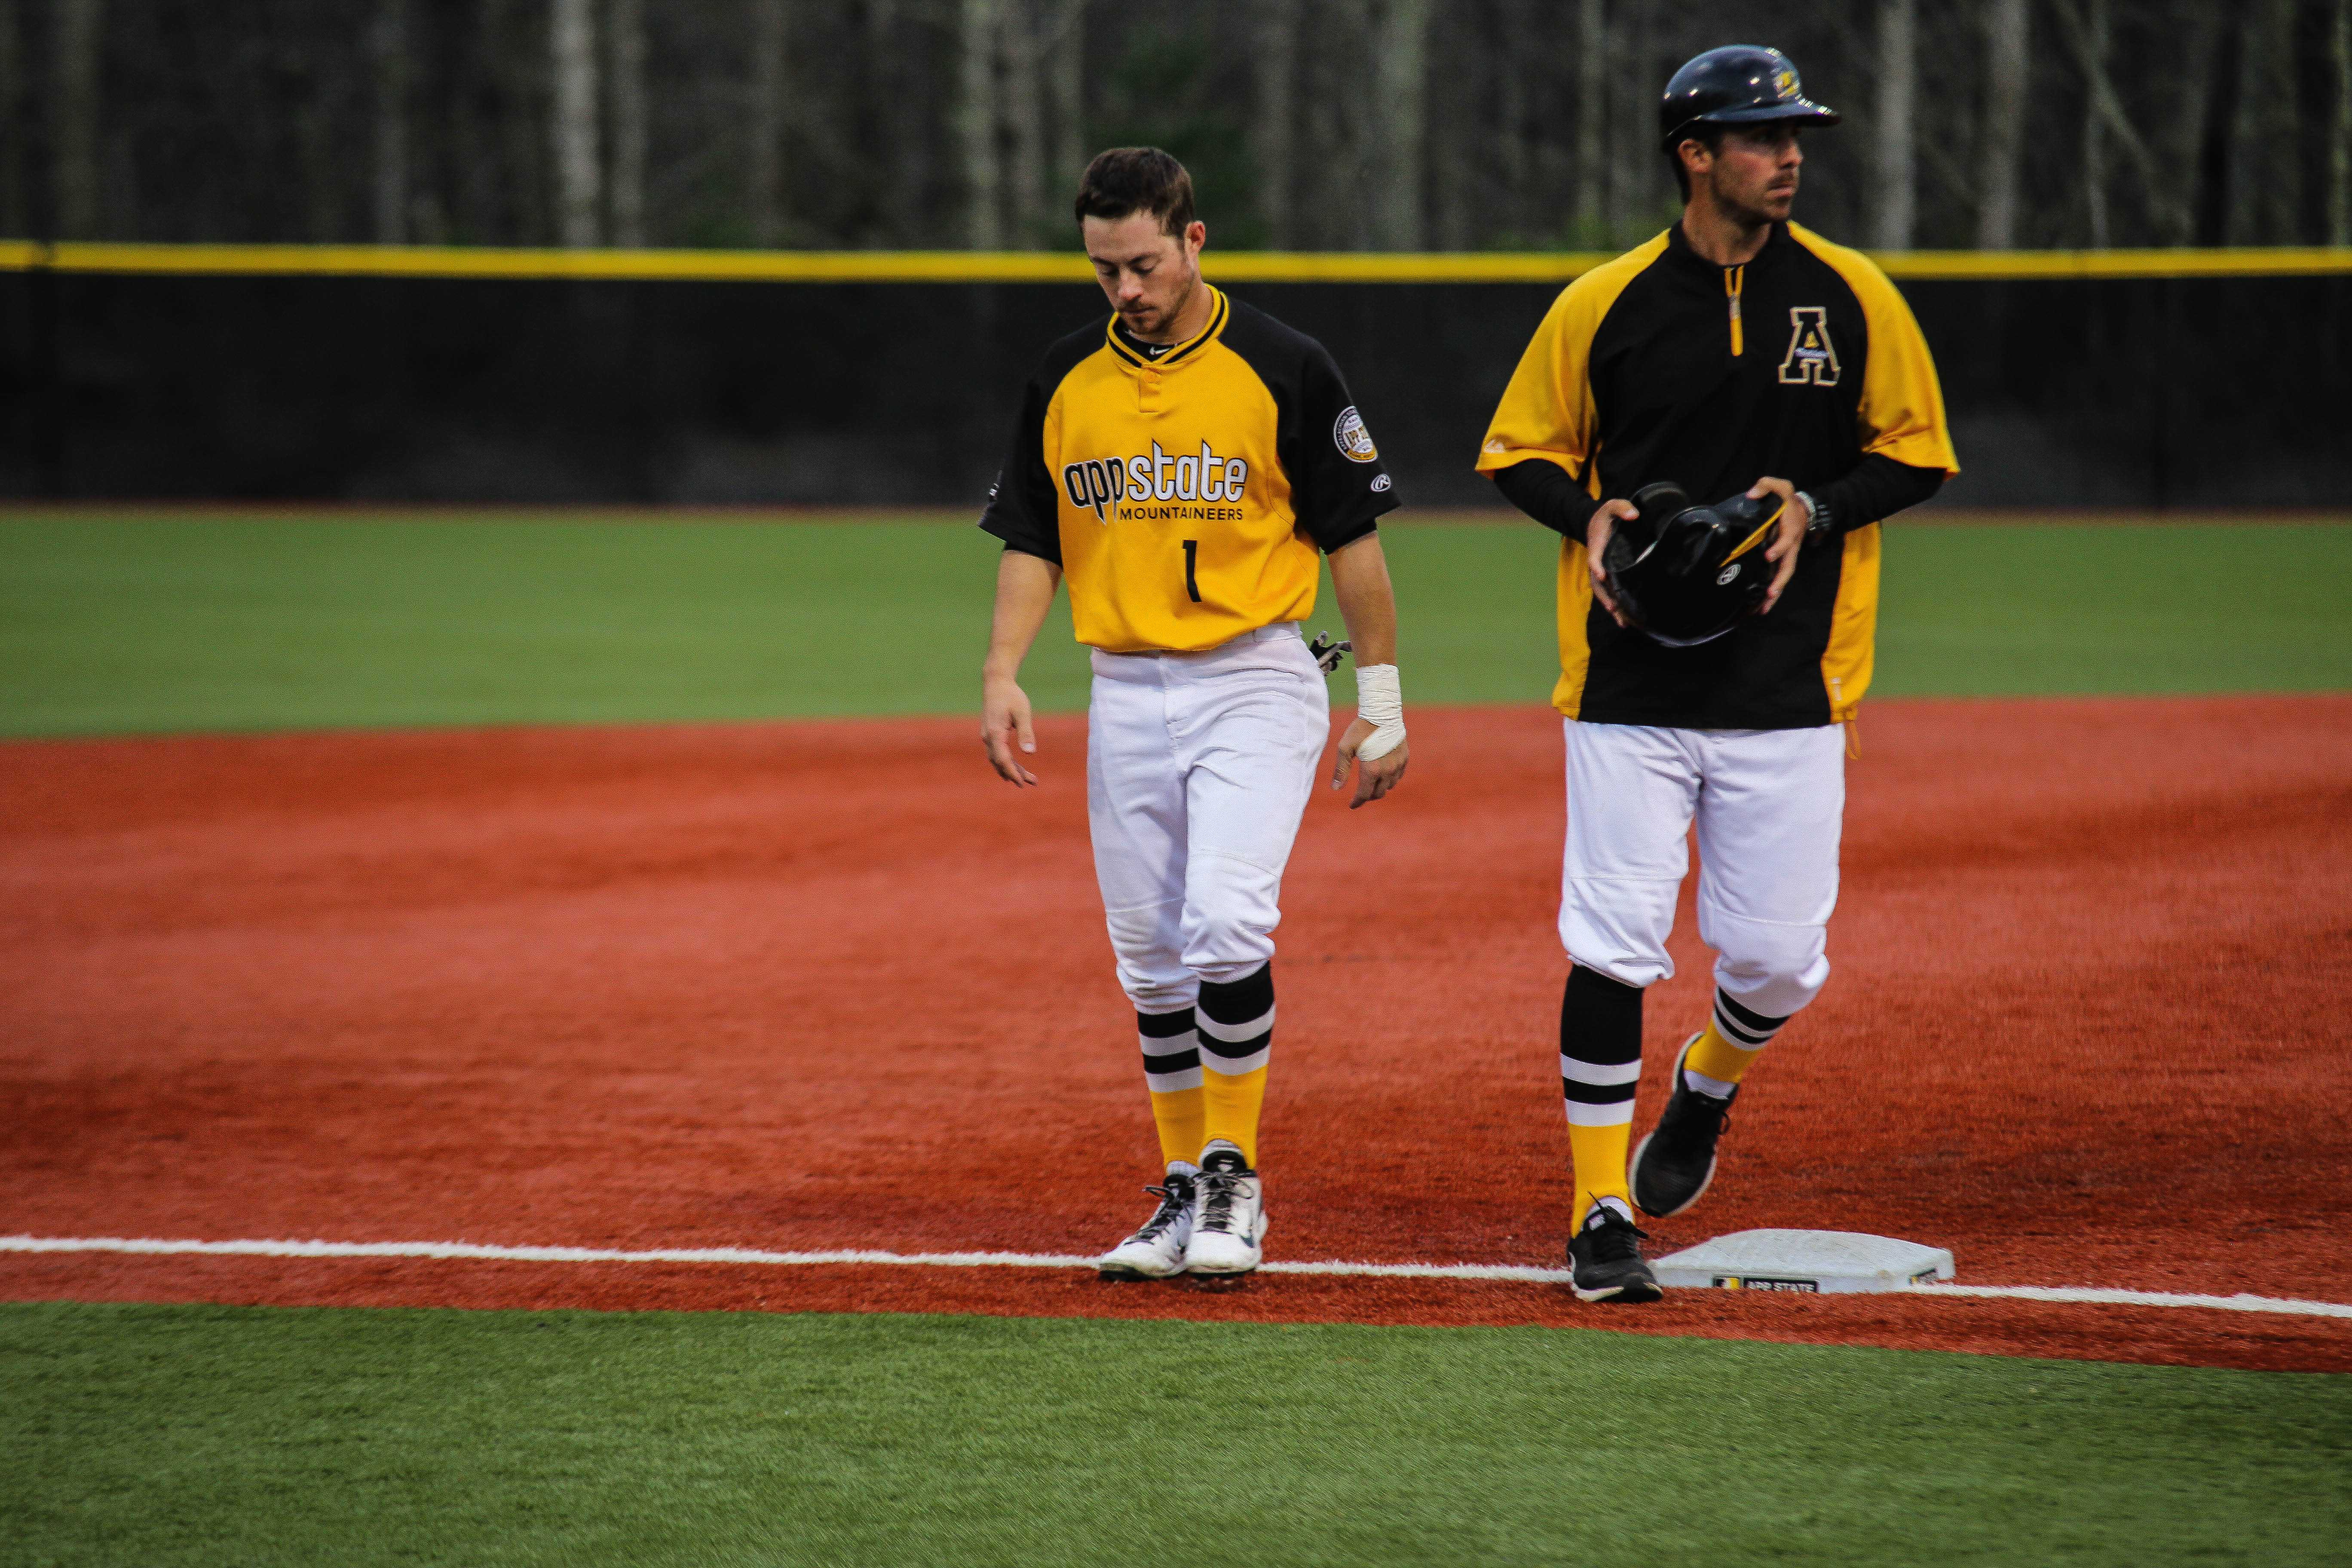 Junior outfielder Brandon Burris (left) walks off the field during App State's series opener against Georgia State. The Mountaineers had multiple defensive errors that resulted in a 4-3 loss in 12 innings. Photo: Gerrit Van Genderen | The Appalachian